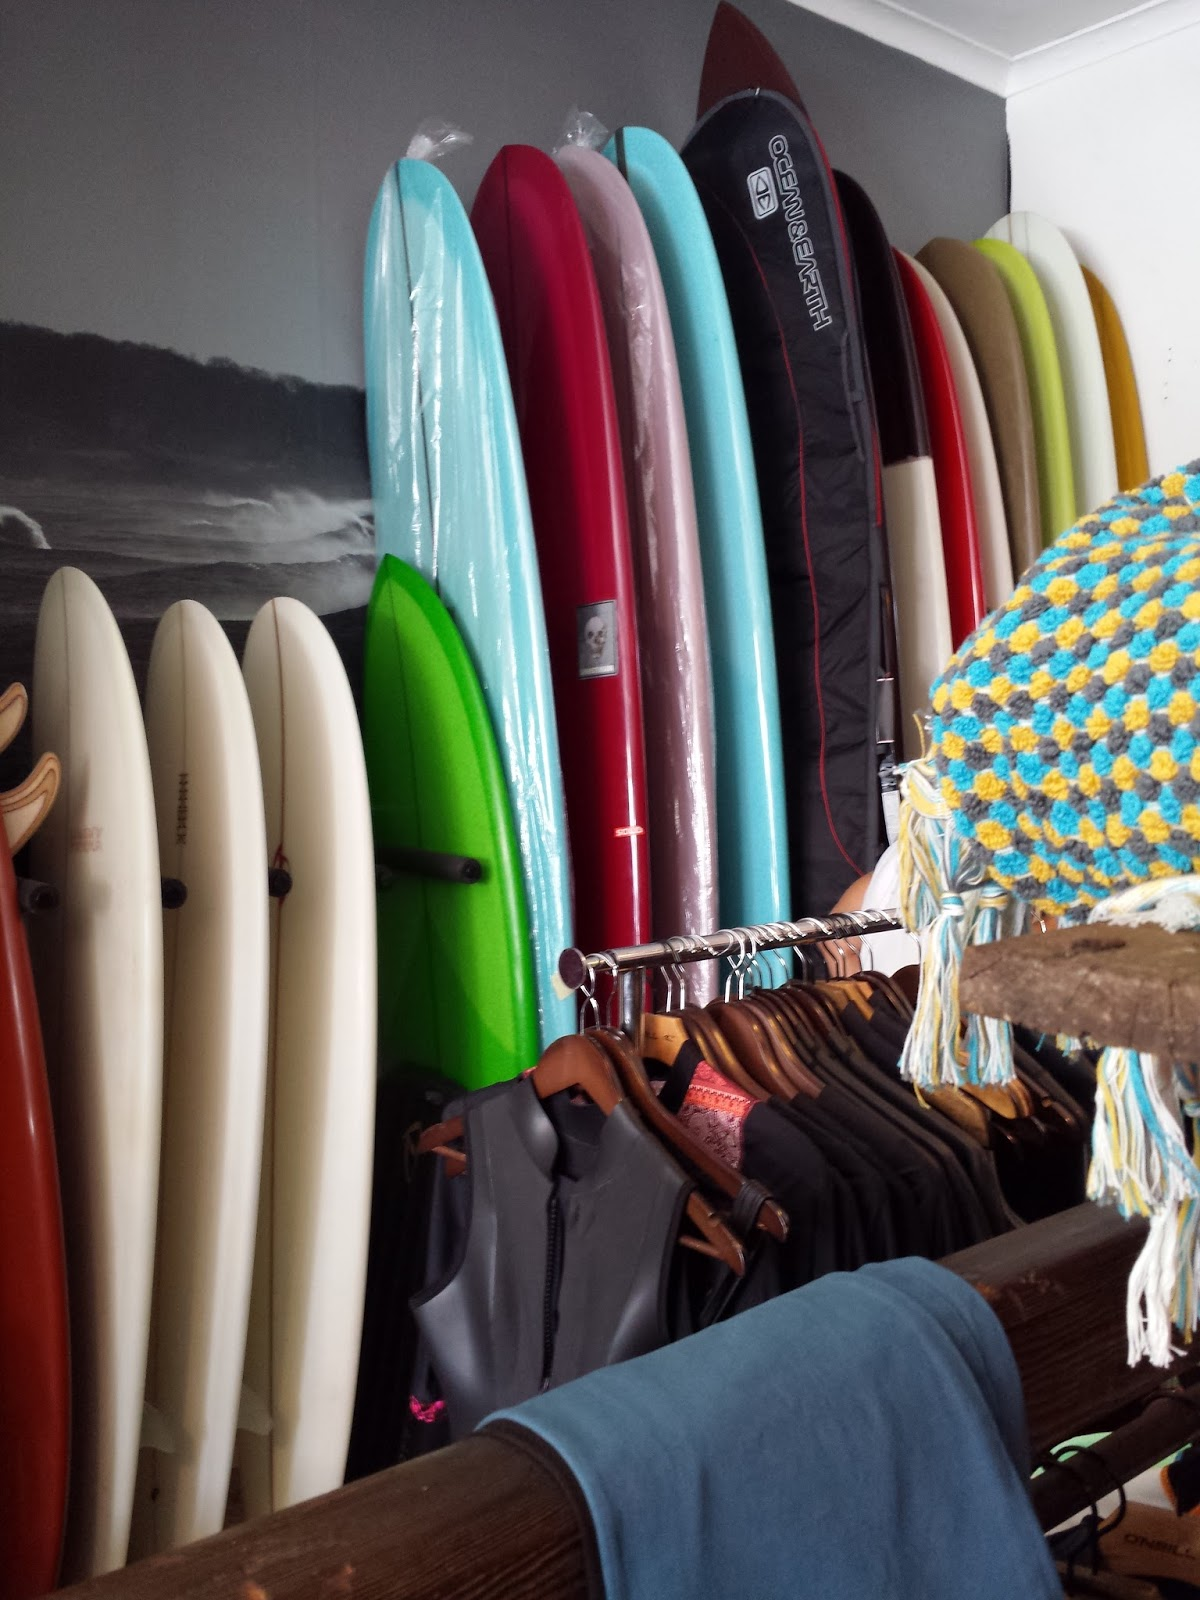 26-03-2016-australia-siebert-surfboards-07